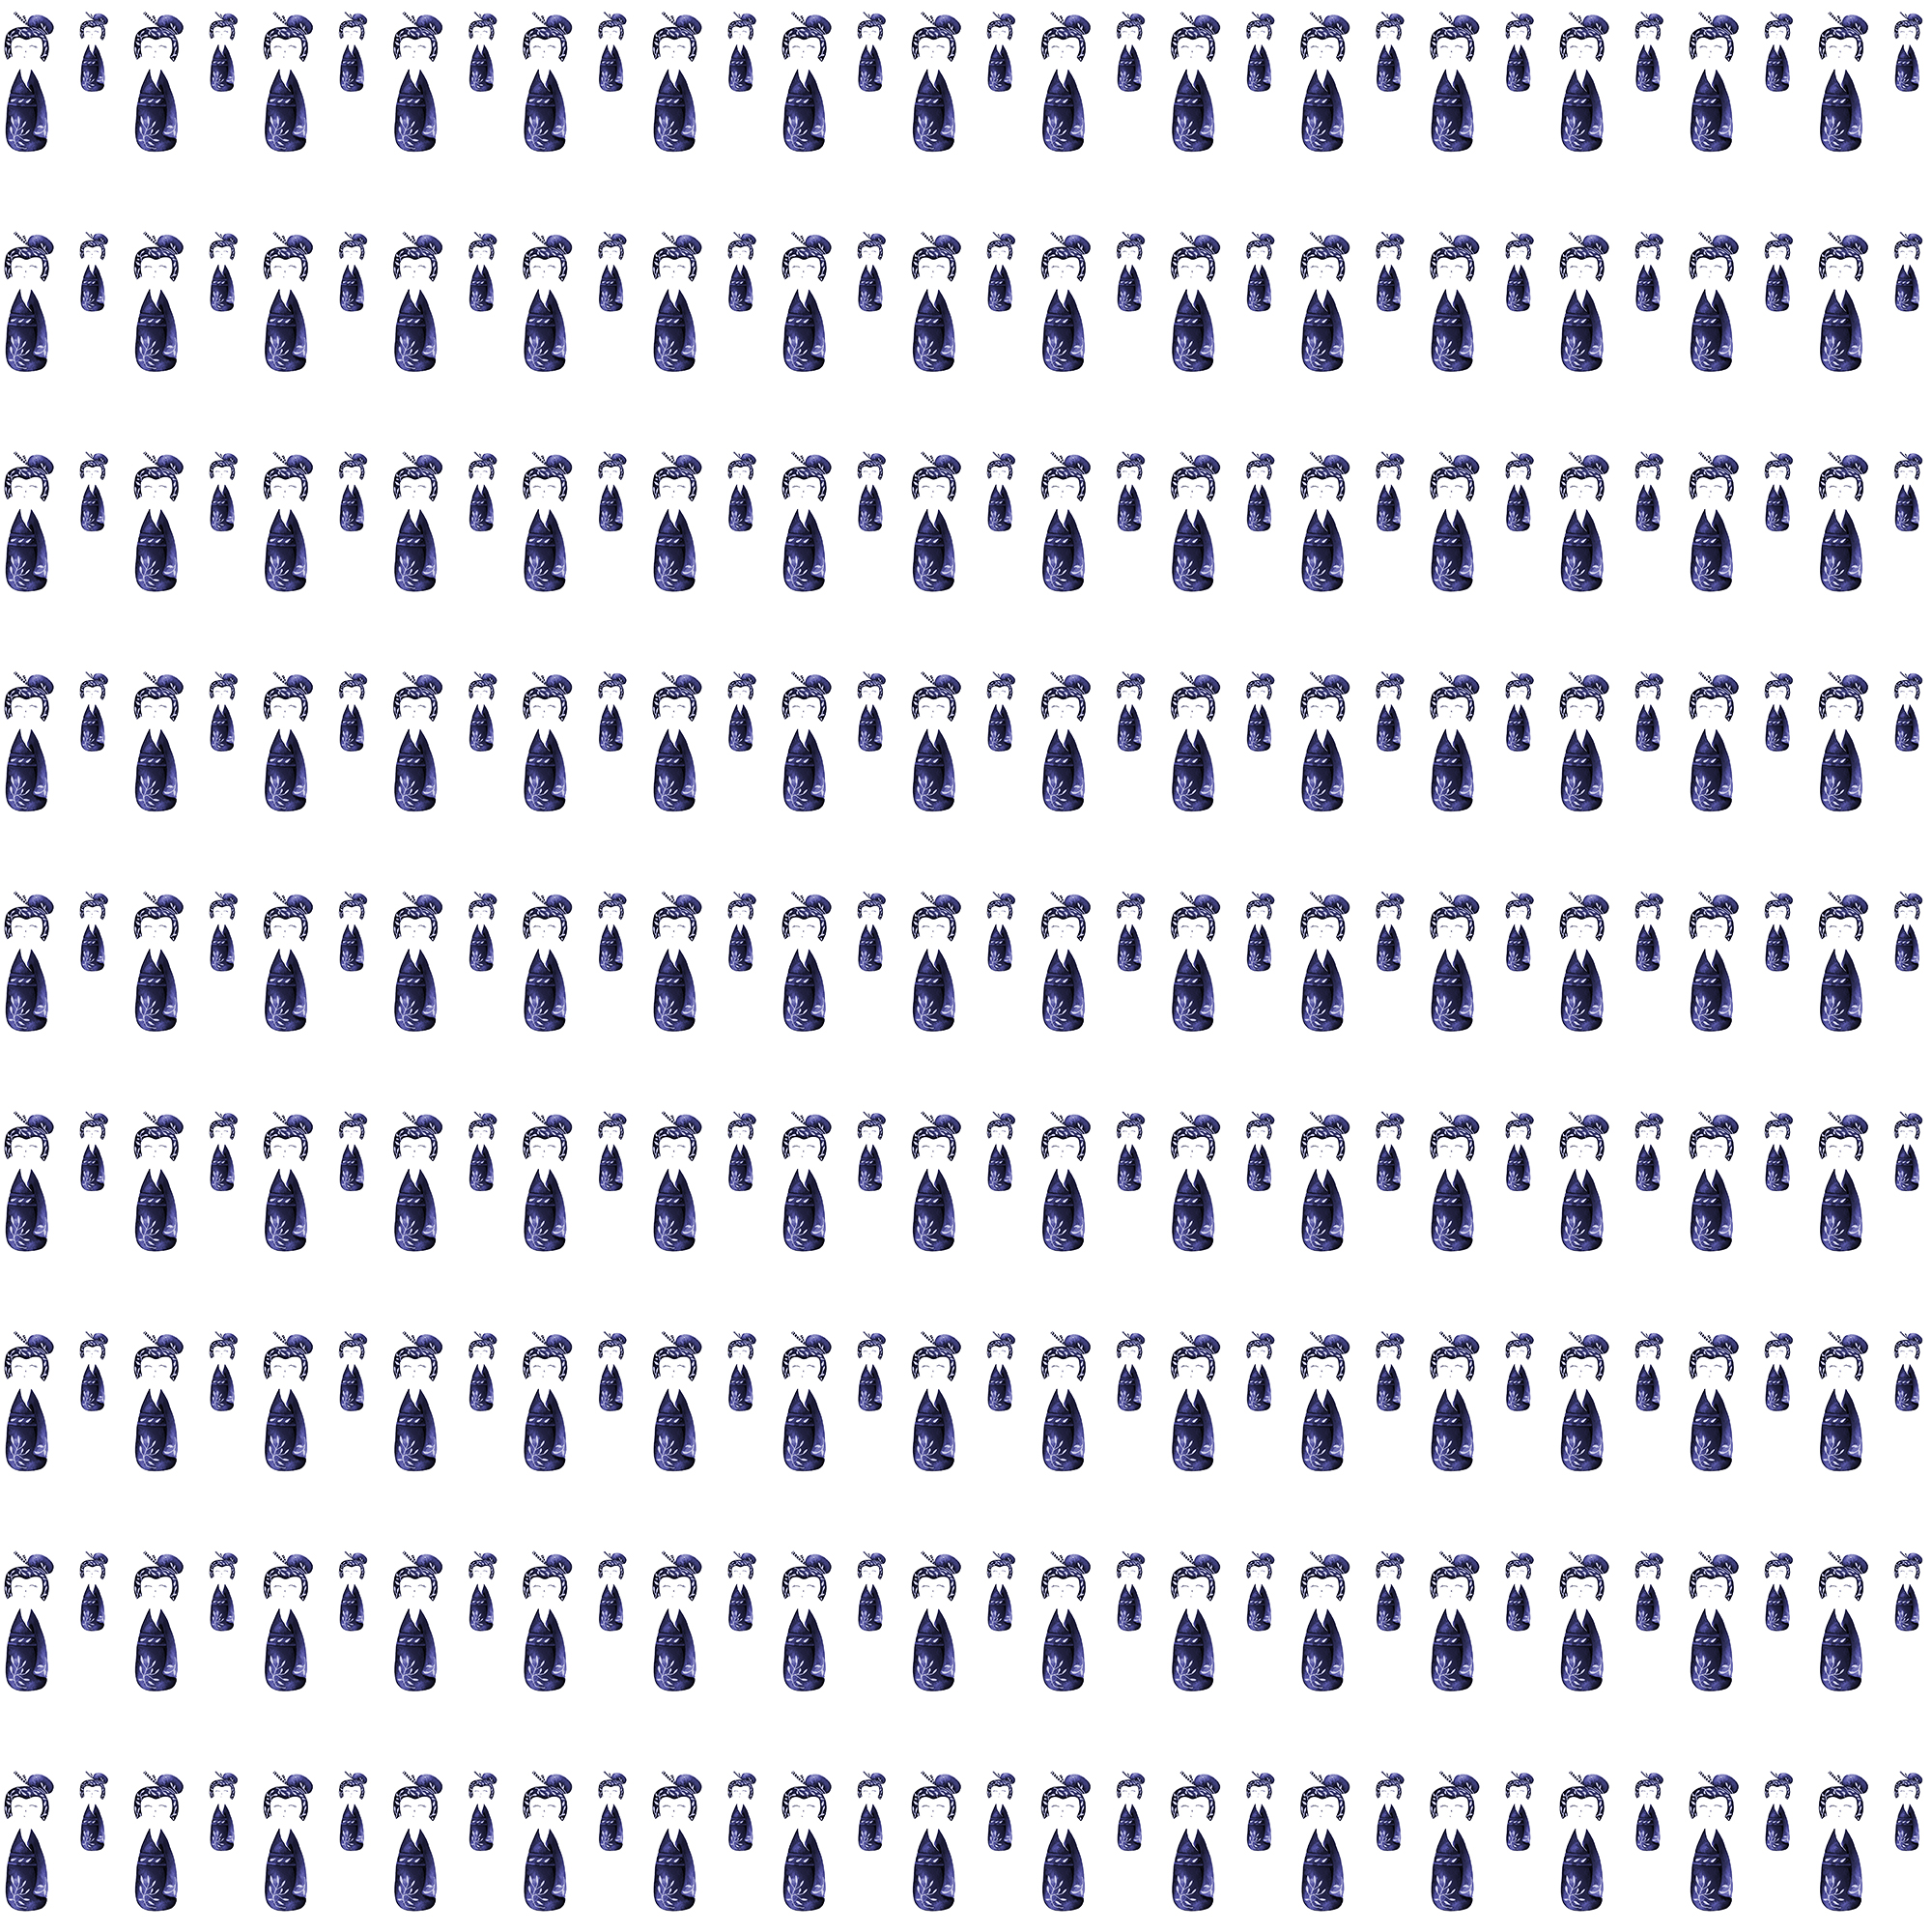 Tiny Navy Blue Kokeshi dolls on rows on a white background - repeat pattern